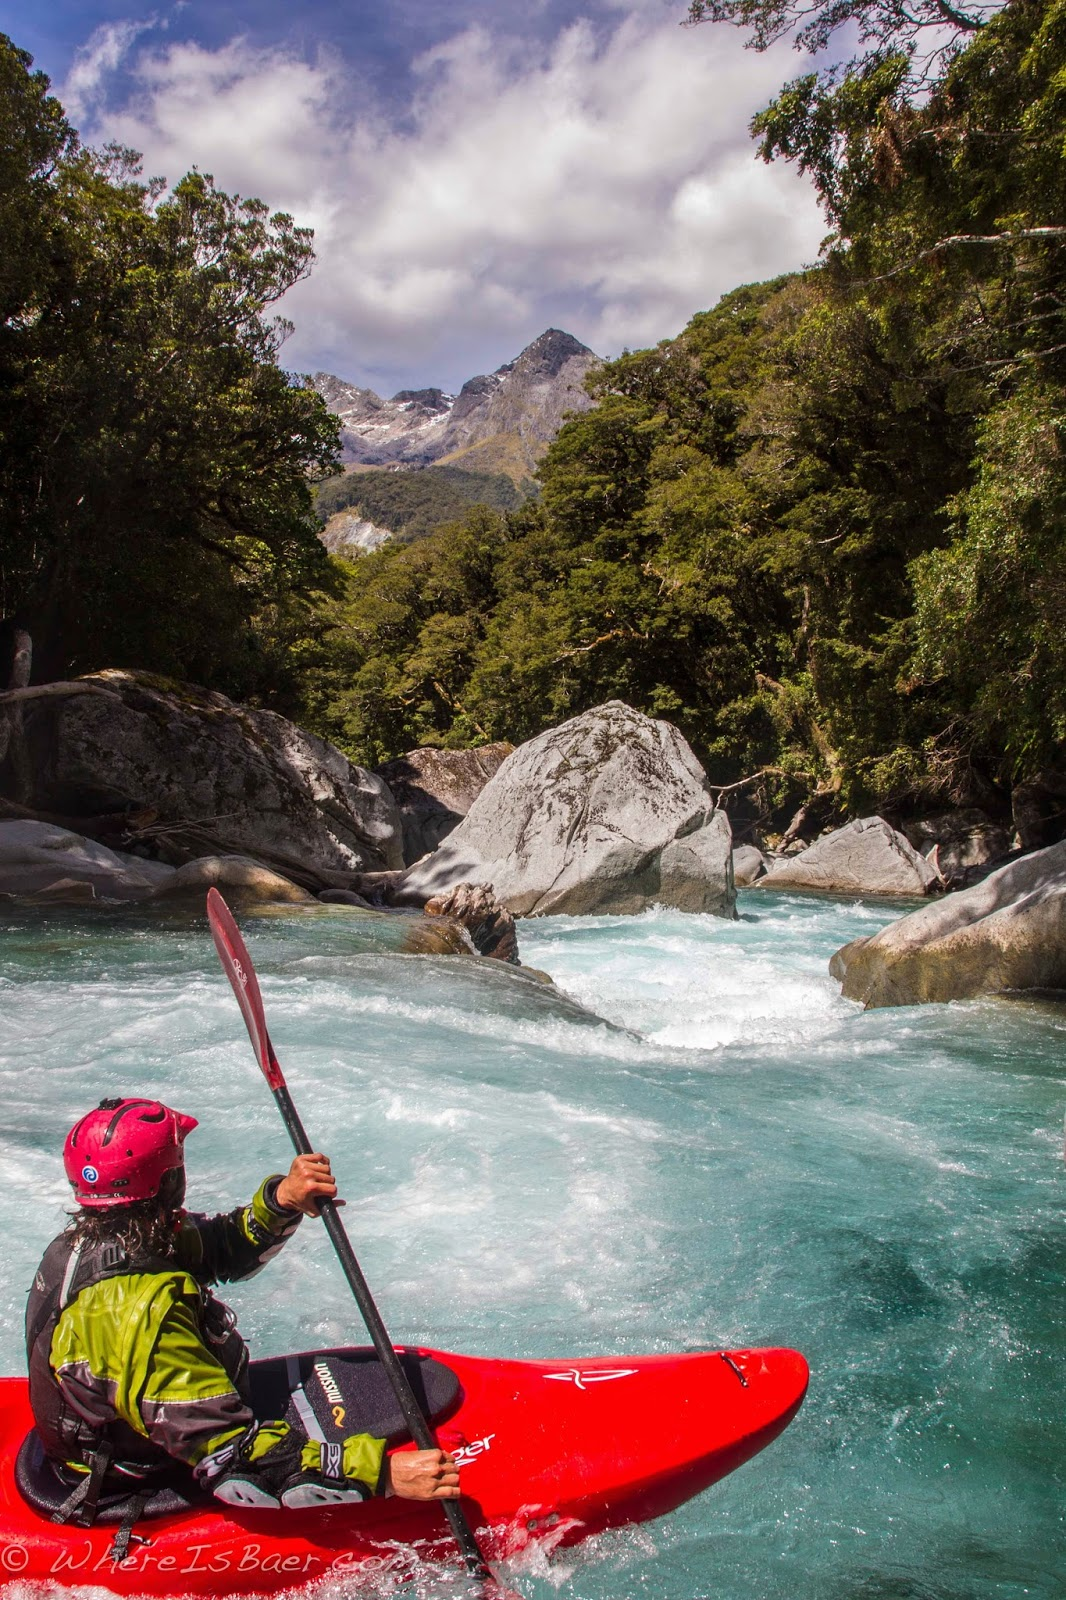 Gonzo spotting his next line on the Hollyford River, NZ, Chris Baer